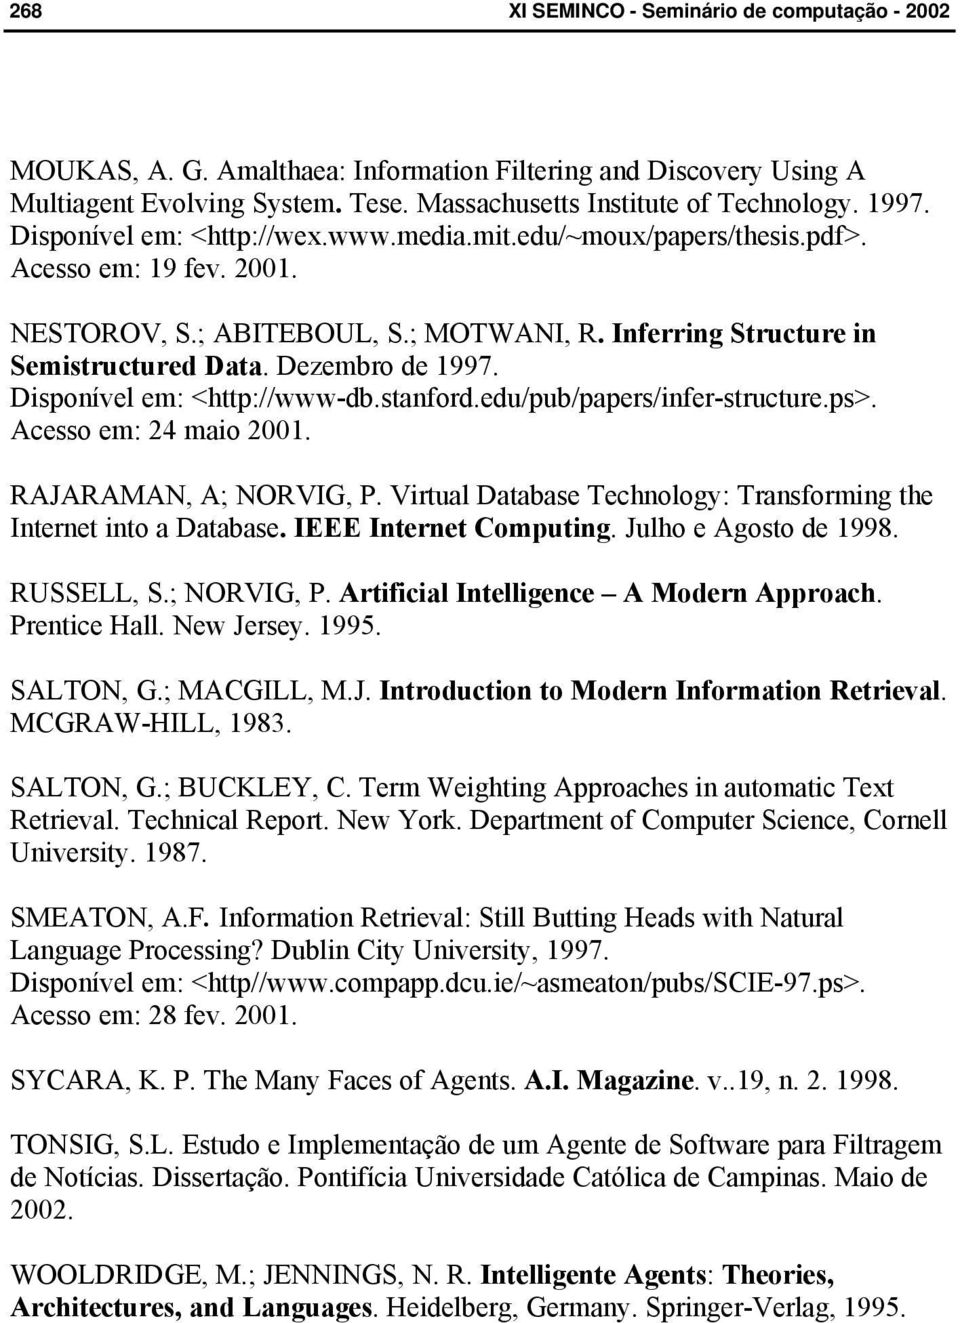 edu/pub/papers/infer-structure.ps>. Acesso em: 24 maio 2001. RAJARAMAN, A; NORVIG, P. Virtual Database Technology: Transforming the Internet into a Database. IEEE Internet Computing.